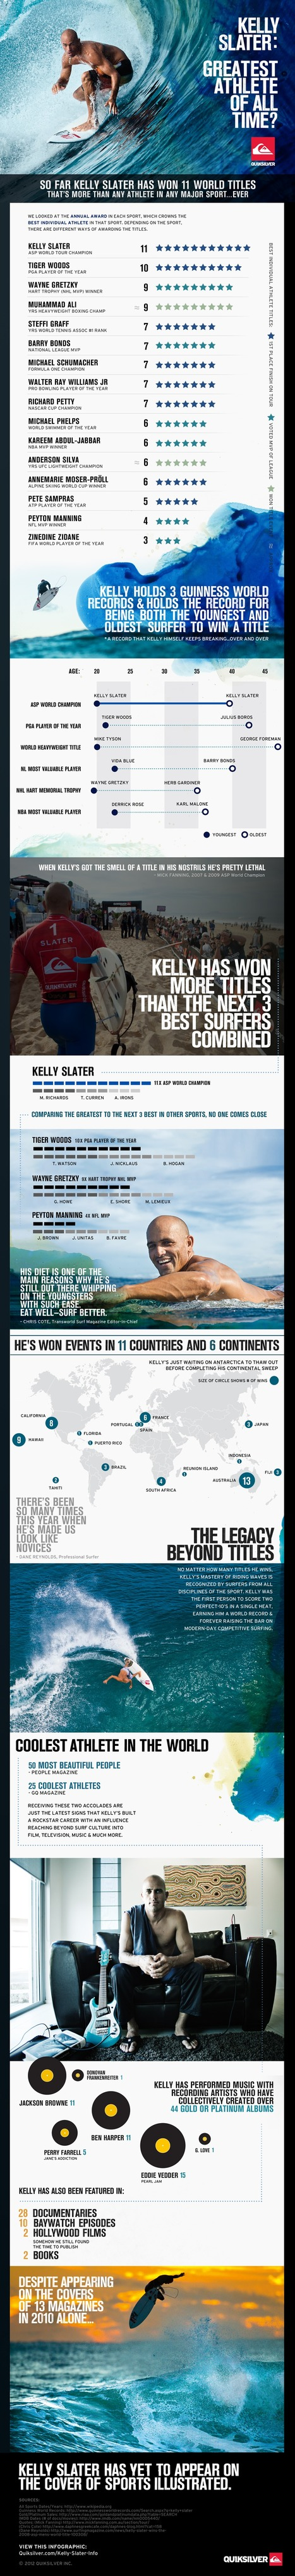 Kelly Slater - The best Athlete Ever? | Life, The Universe & Everything.... | Scoop.it